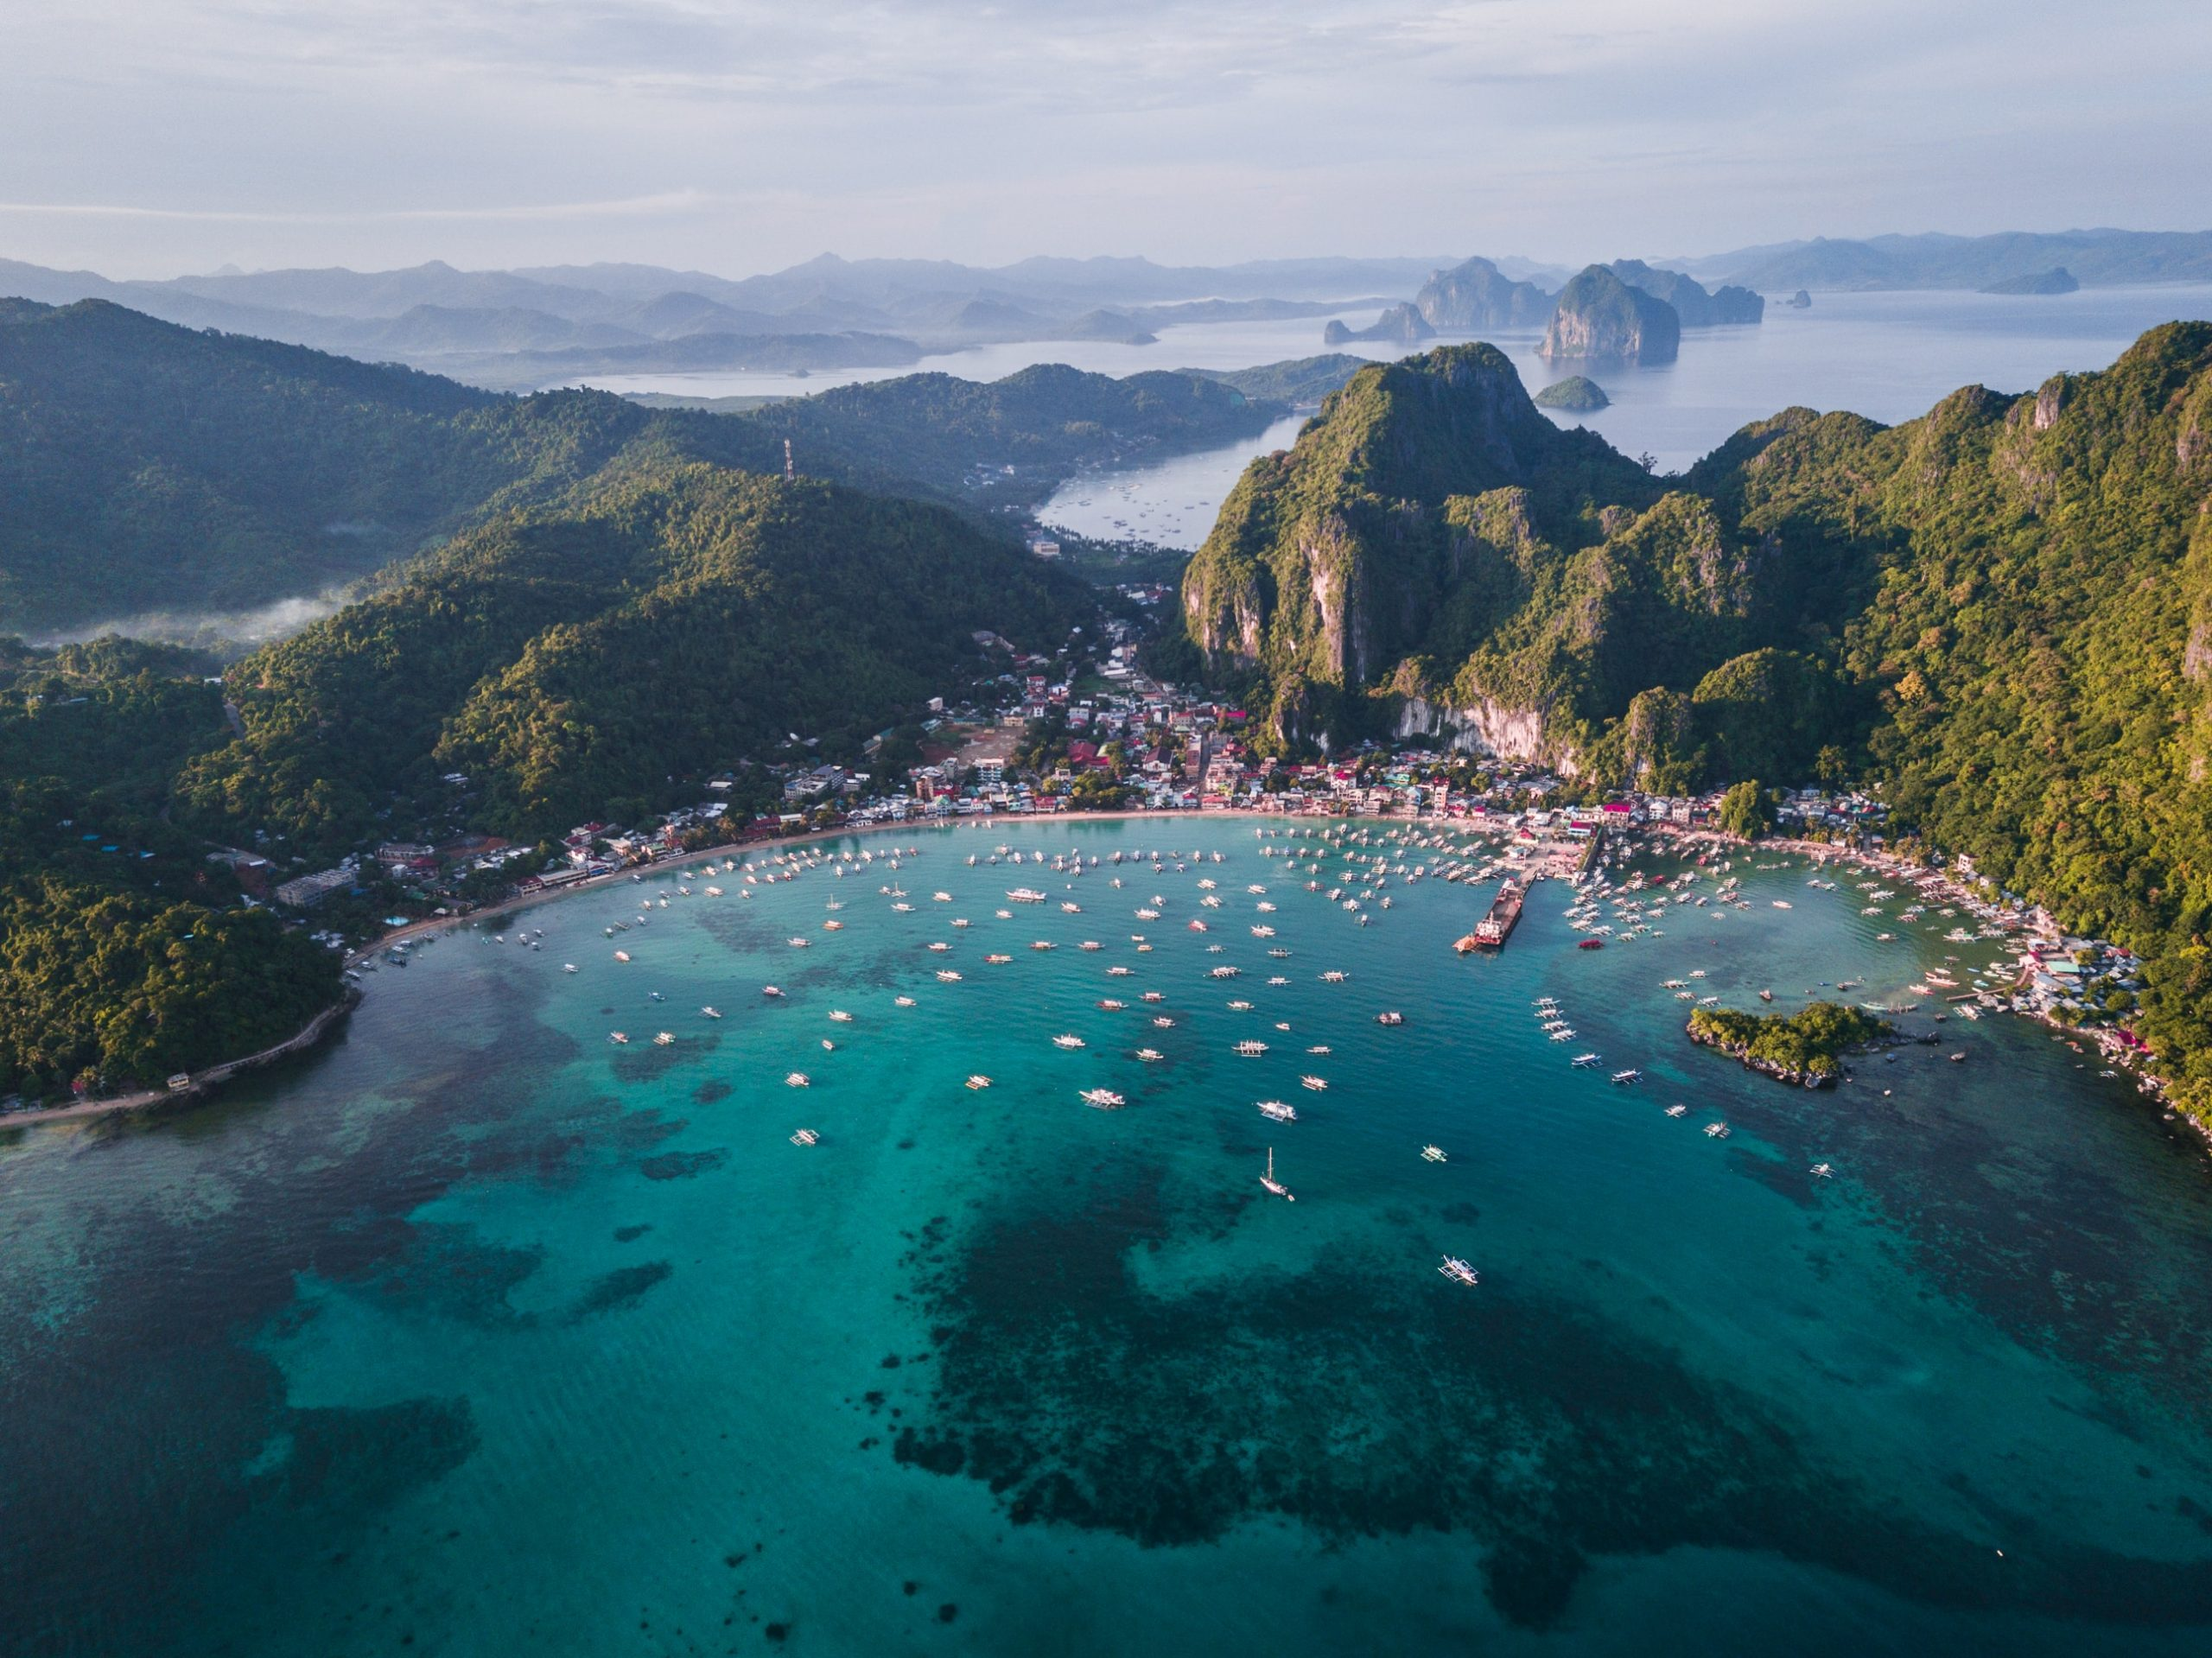 Planning a Trip to the Philippines? Here's What You Need to Do First